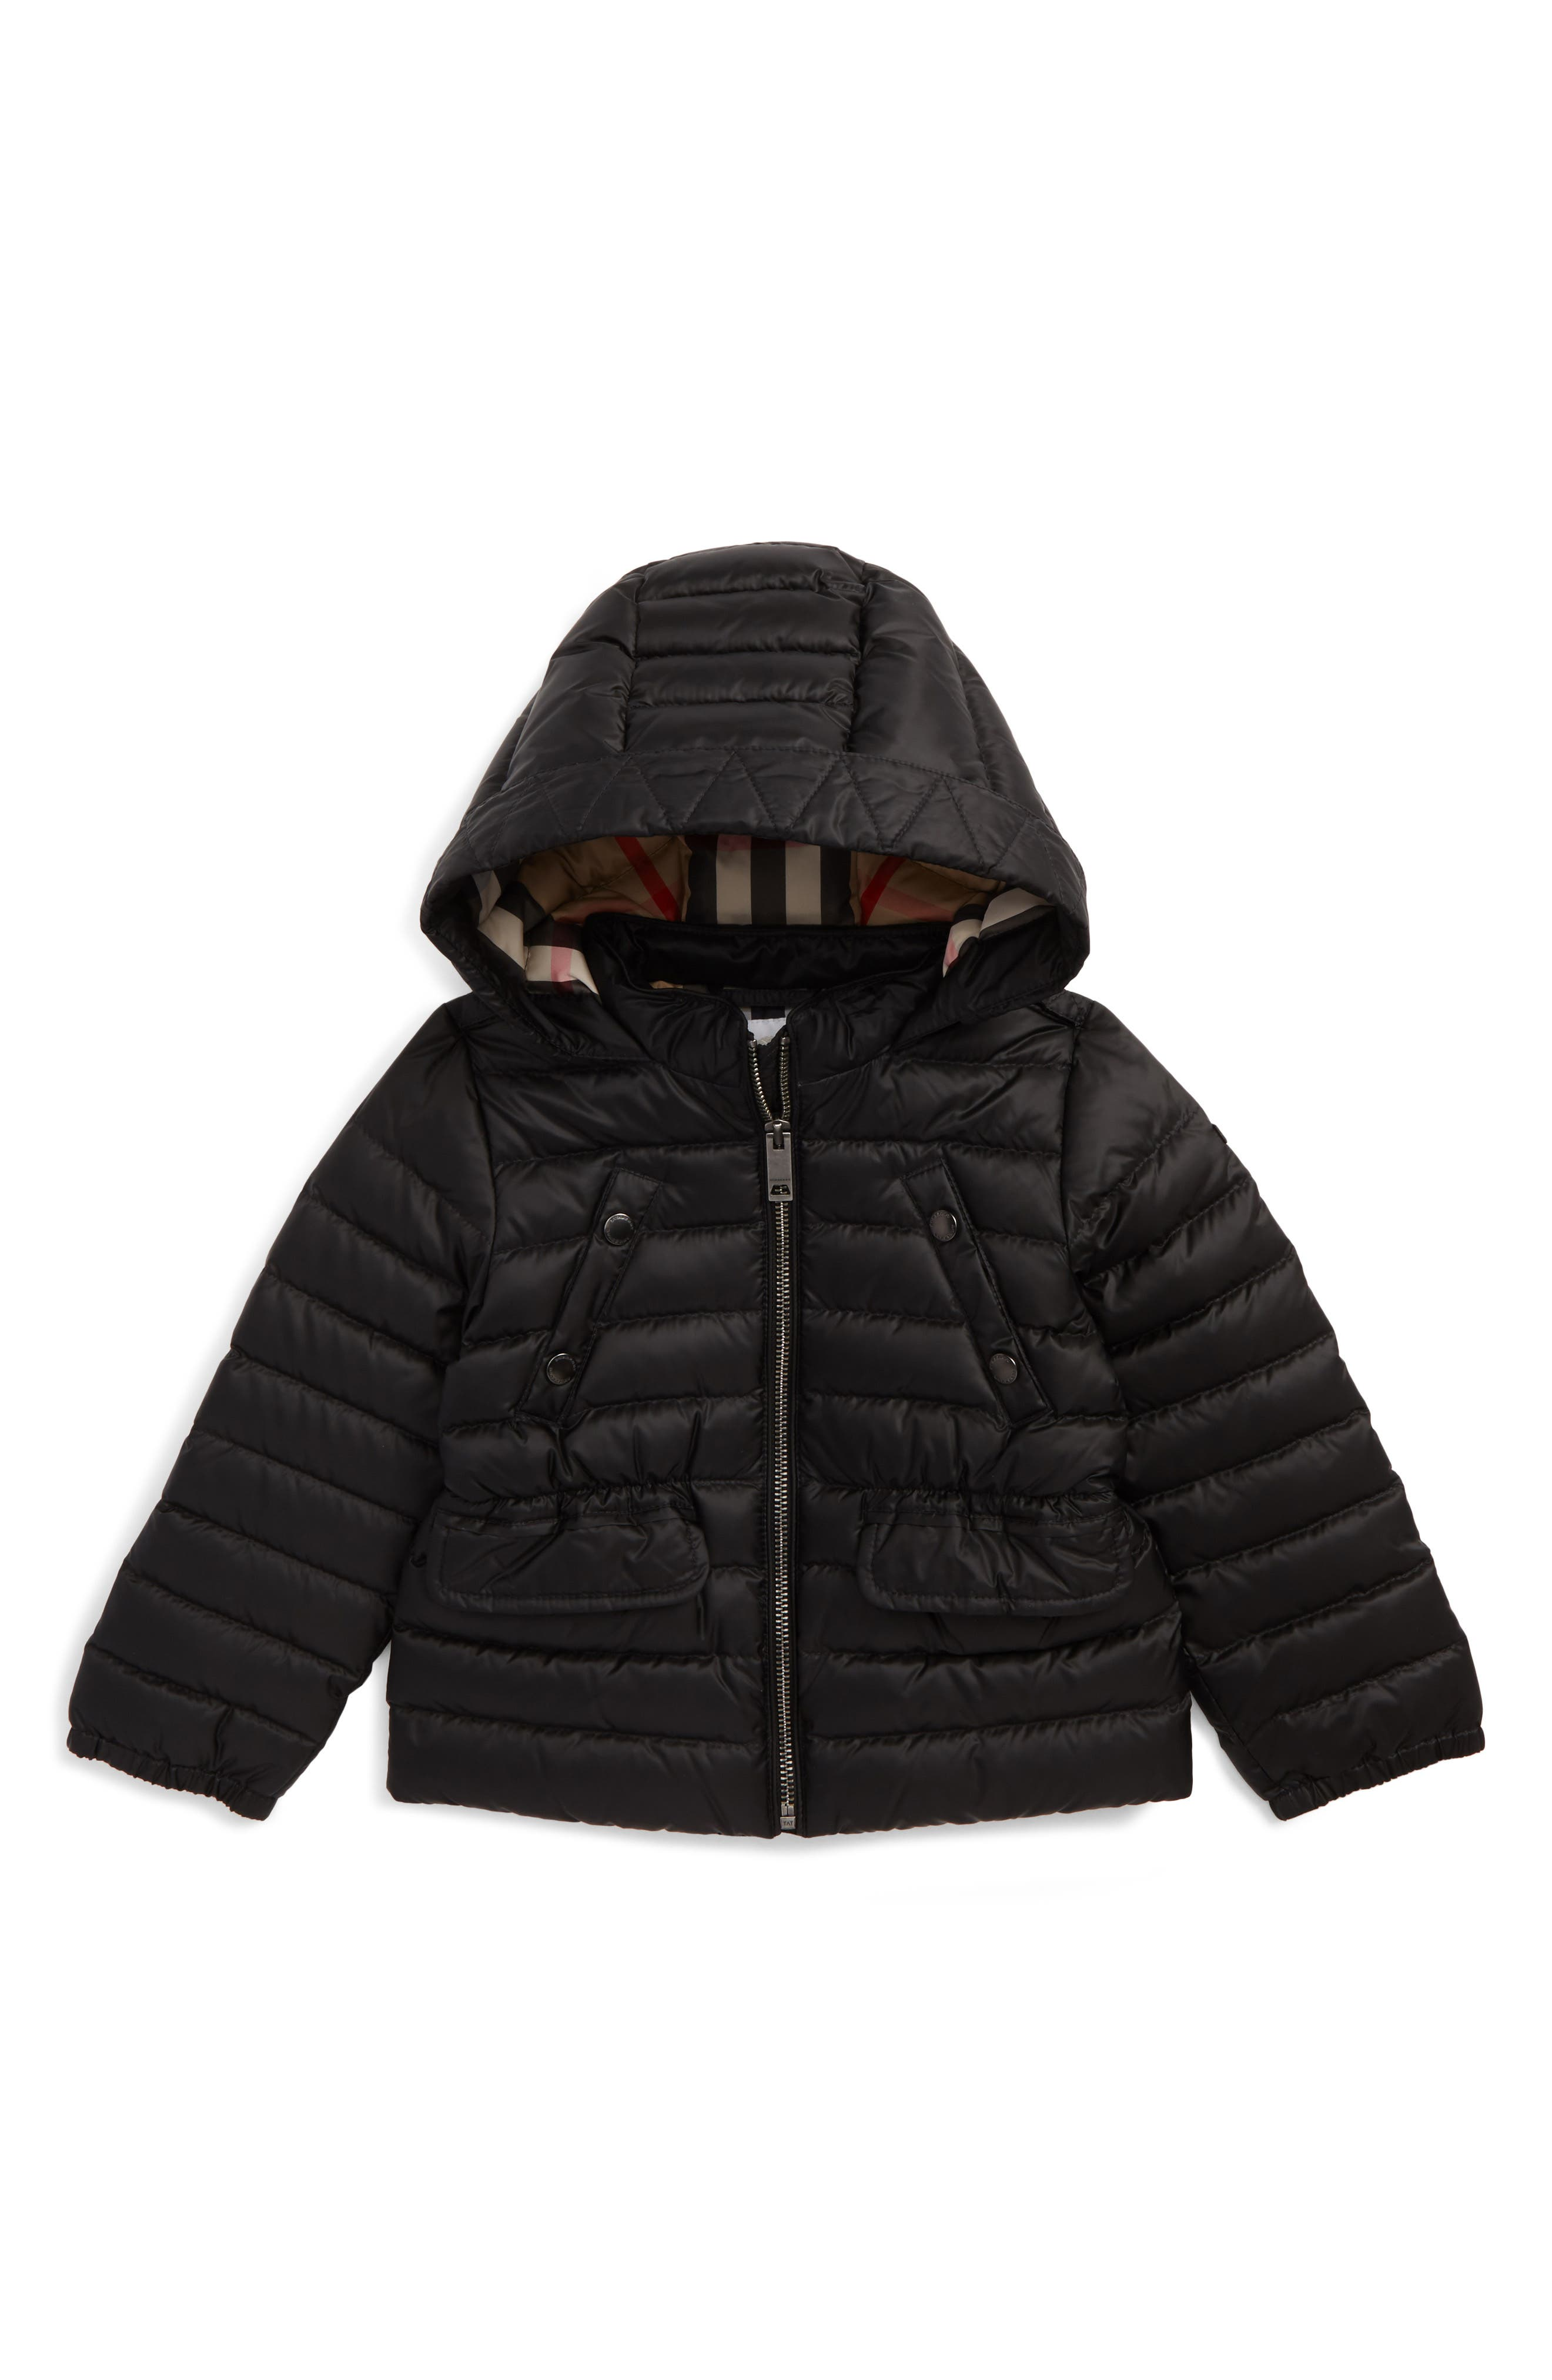 Main Image - Burberry Mini Bronwyn Quilted Down Jacket (Baby & Toddler)